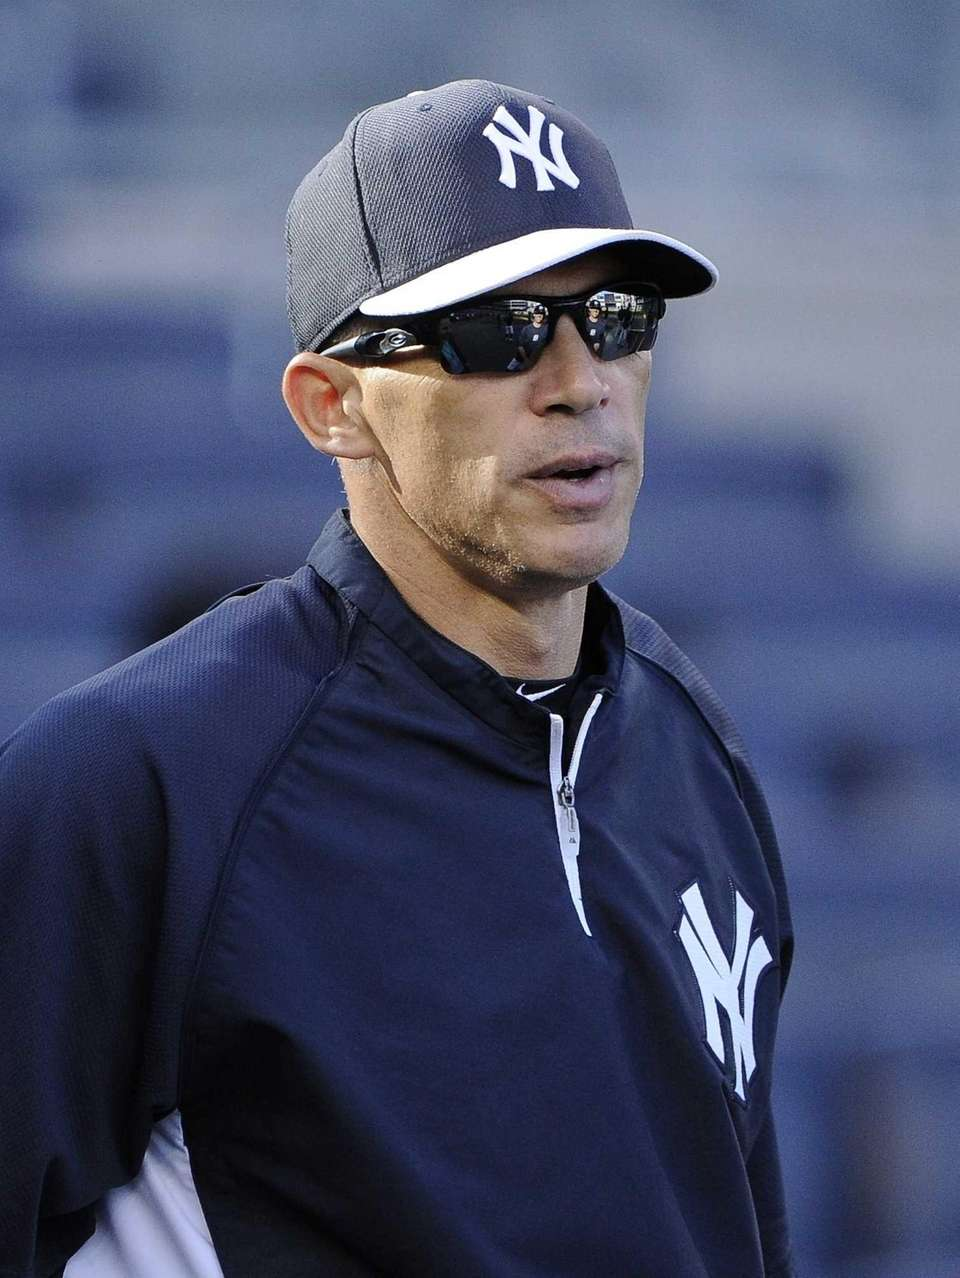 Yankees manager Joe Girardi looks on during batting